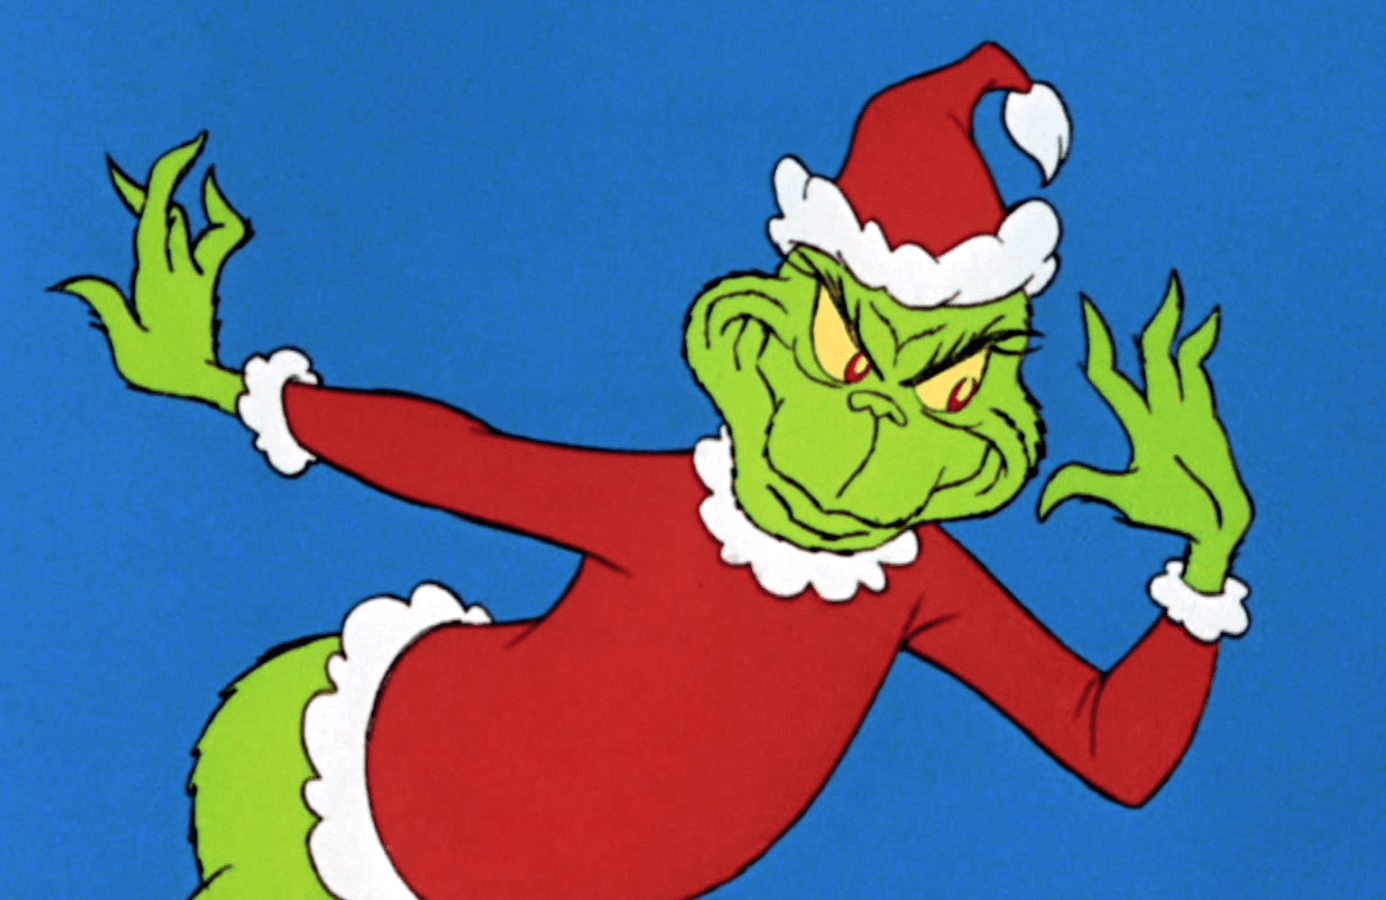 Arraigning the Grinch | The National Judicial College